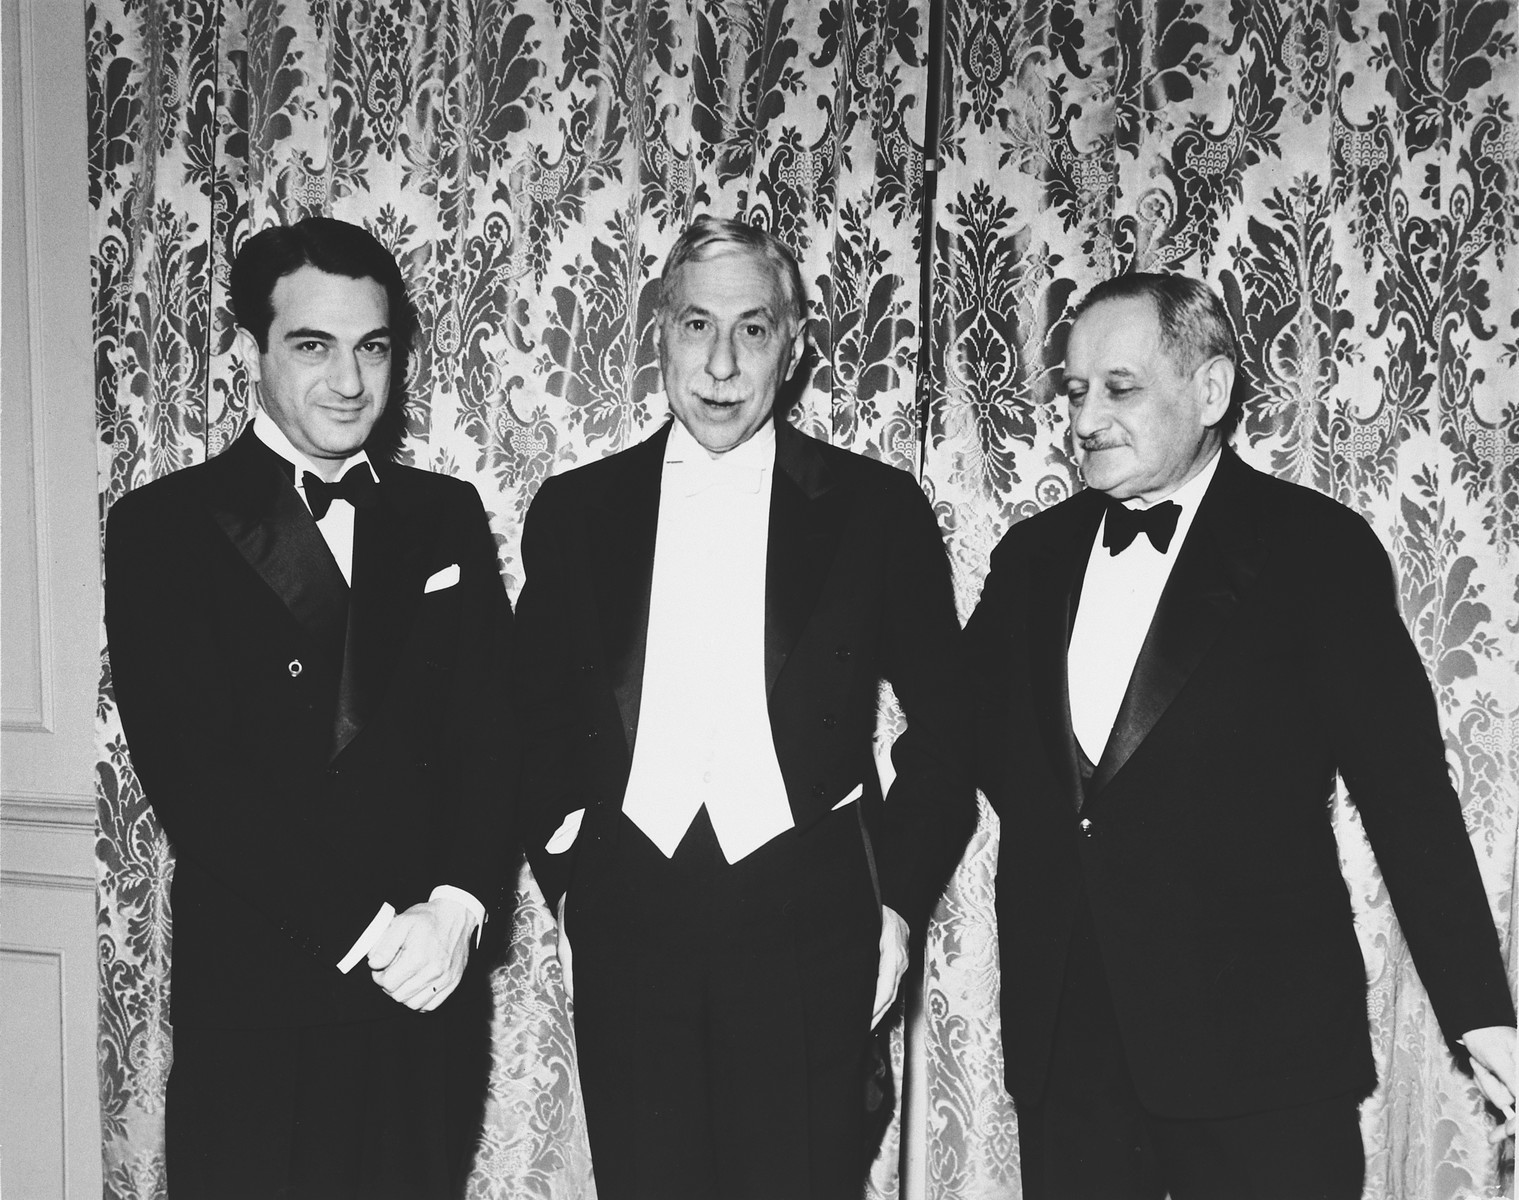 Group portrait of American Zionist leaders and philanthropists.  From left to right are George Blacker, Joseph M. Poskauer, and Paul Baerwald of the JDC.